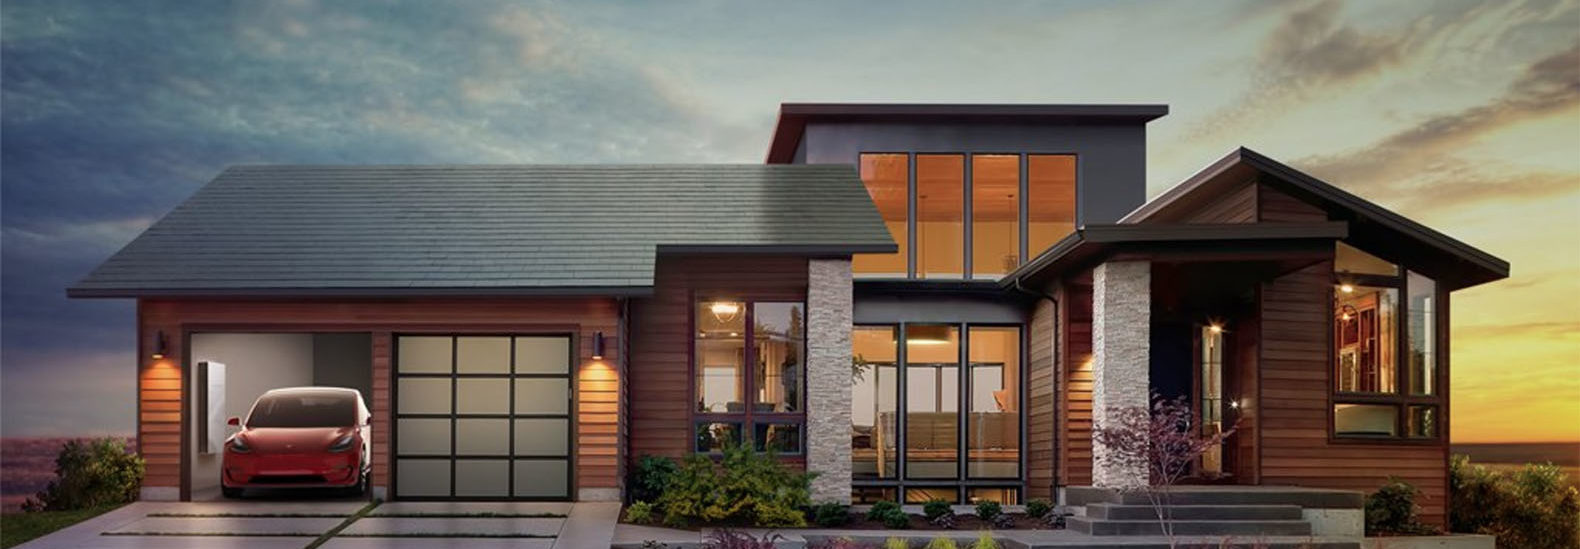 BREAKING Elon Musk unveils TeslaSolarCity integrated solar roof